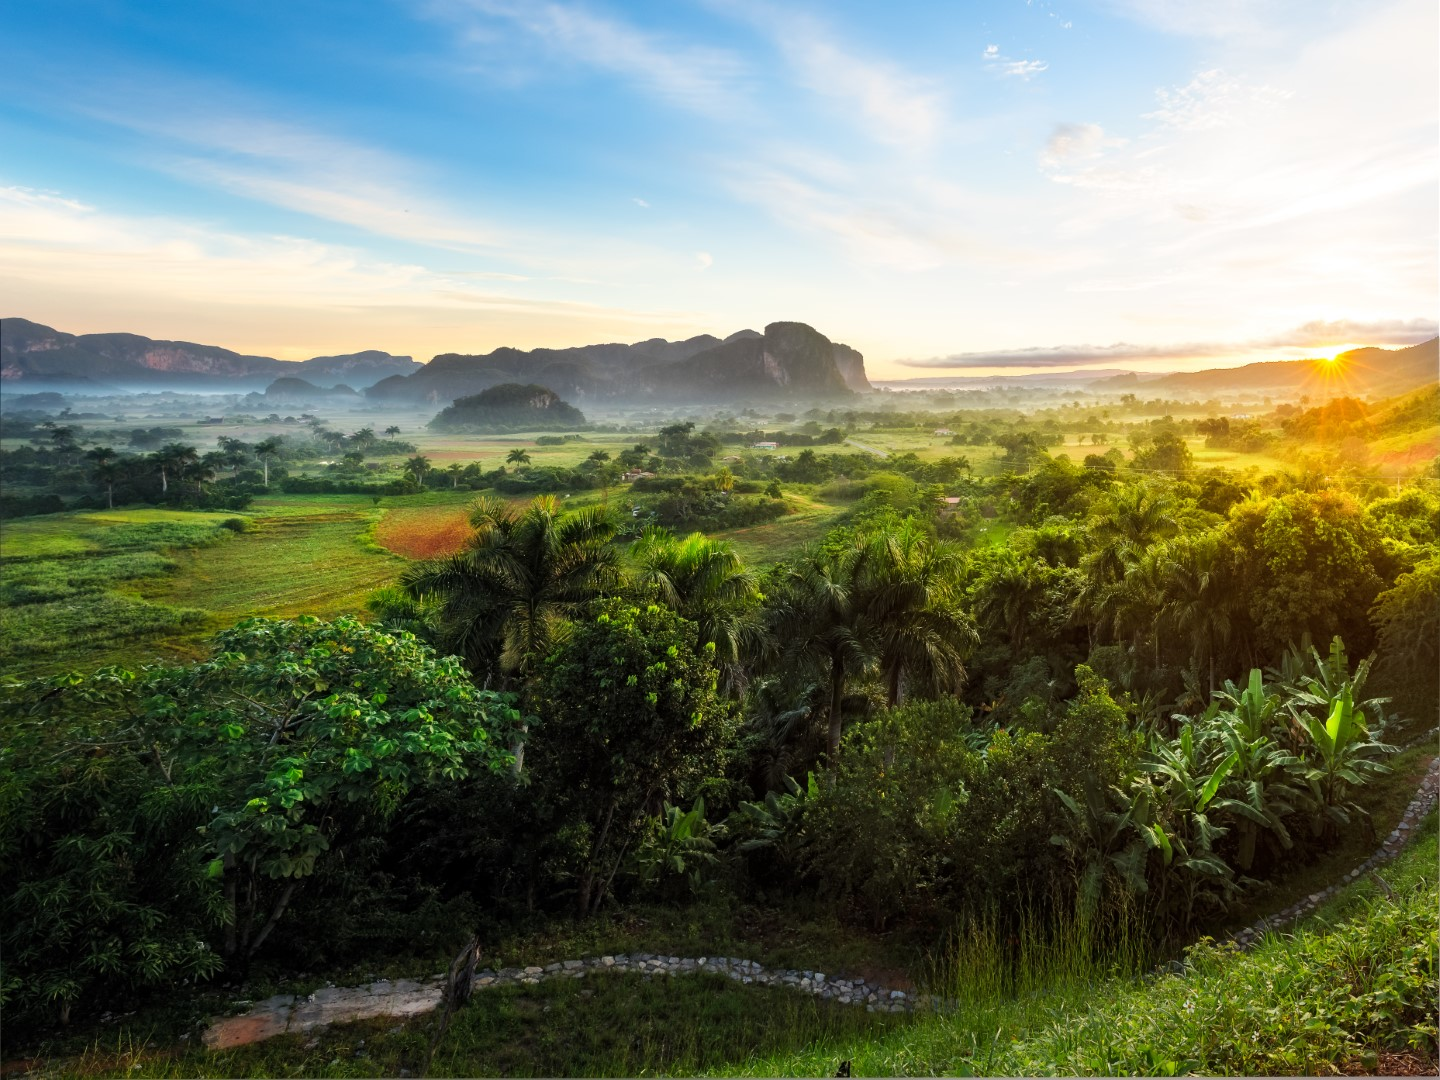 Vinales Valley in Cuba at sunrise